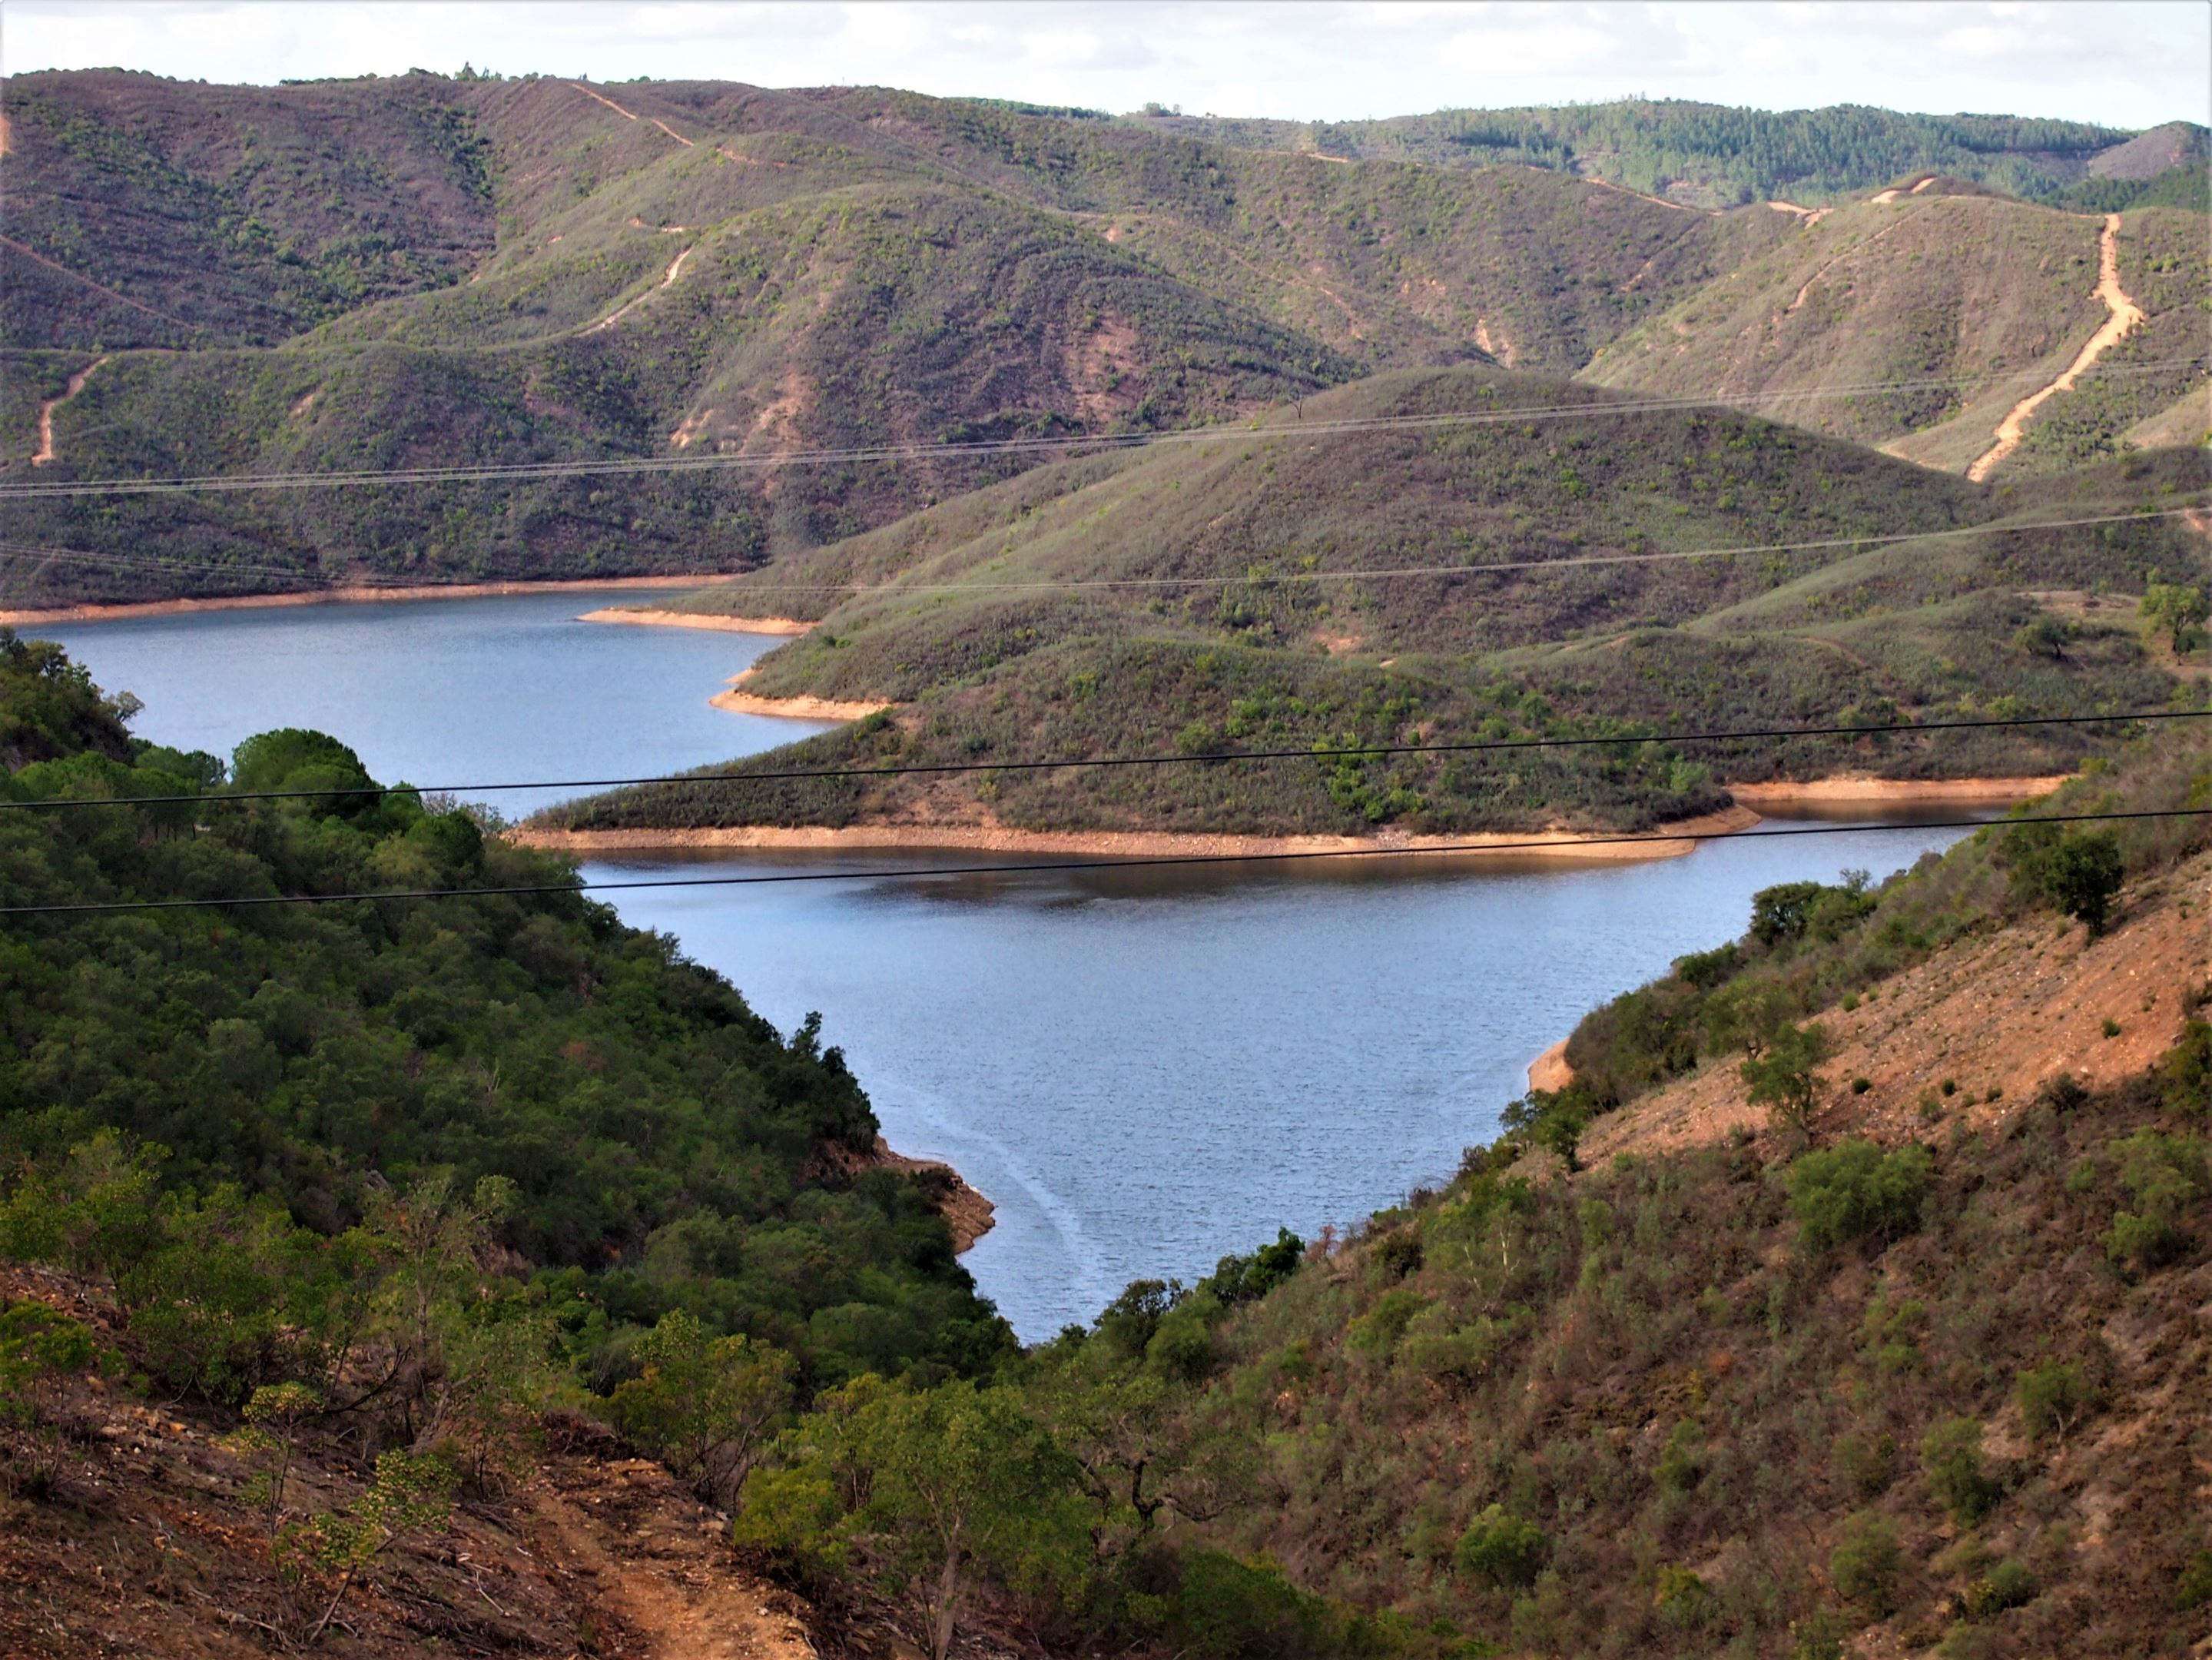 Barragem do Funcho (